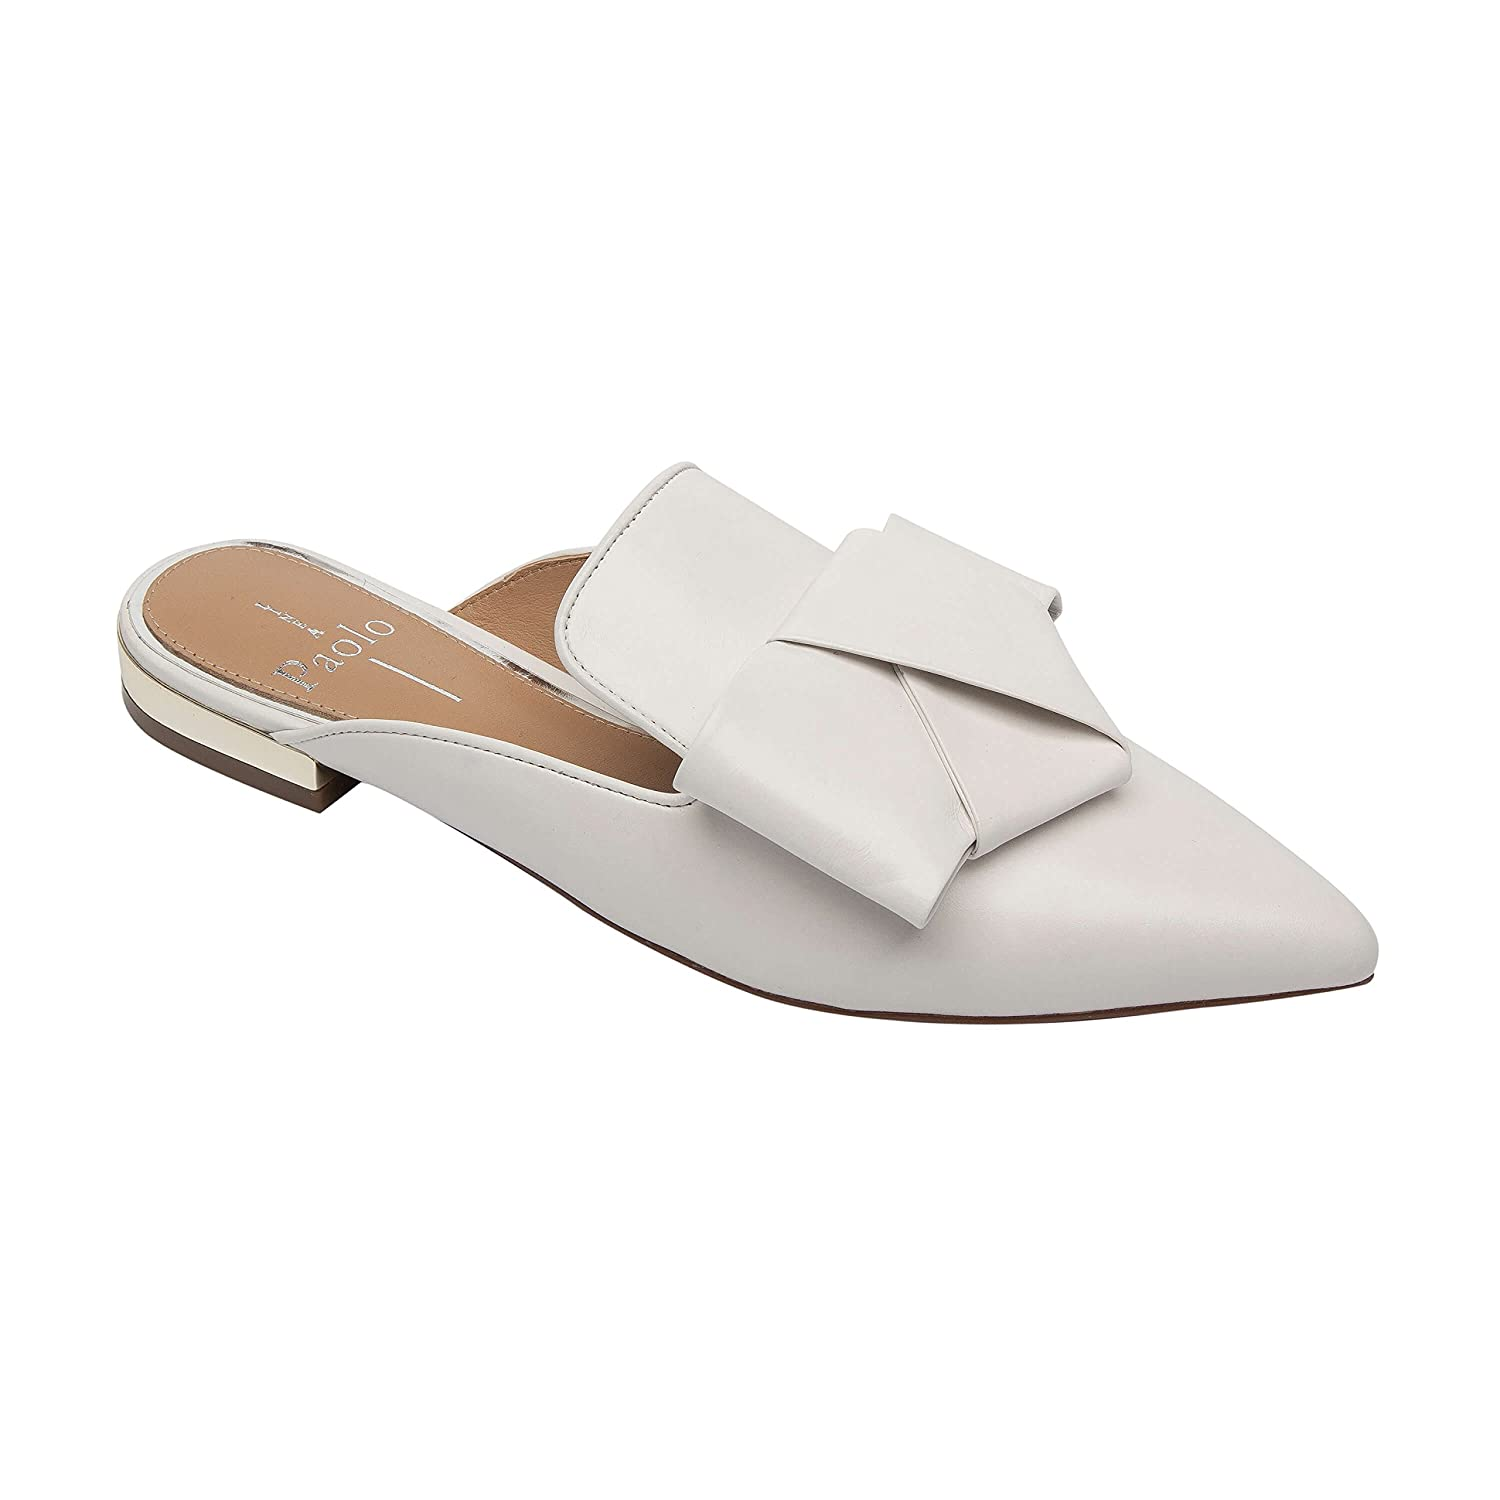 ANYA | Pointy Toe Origami Bow Slip-On Mule Flat Leather or Suede B07BC66BZX 10 M US|Ivory Leather